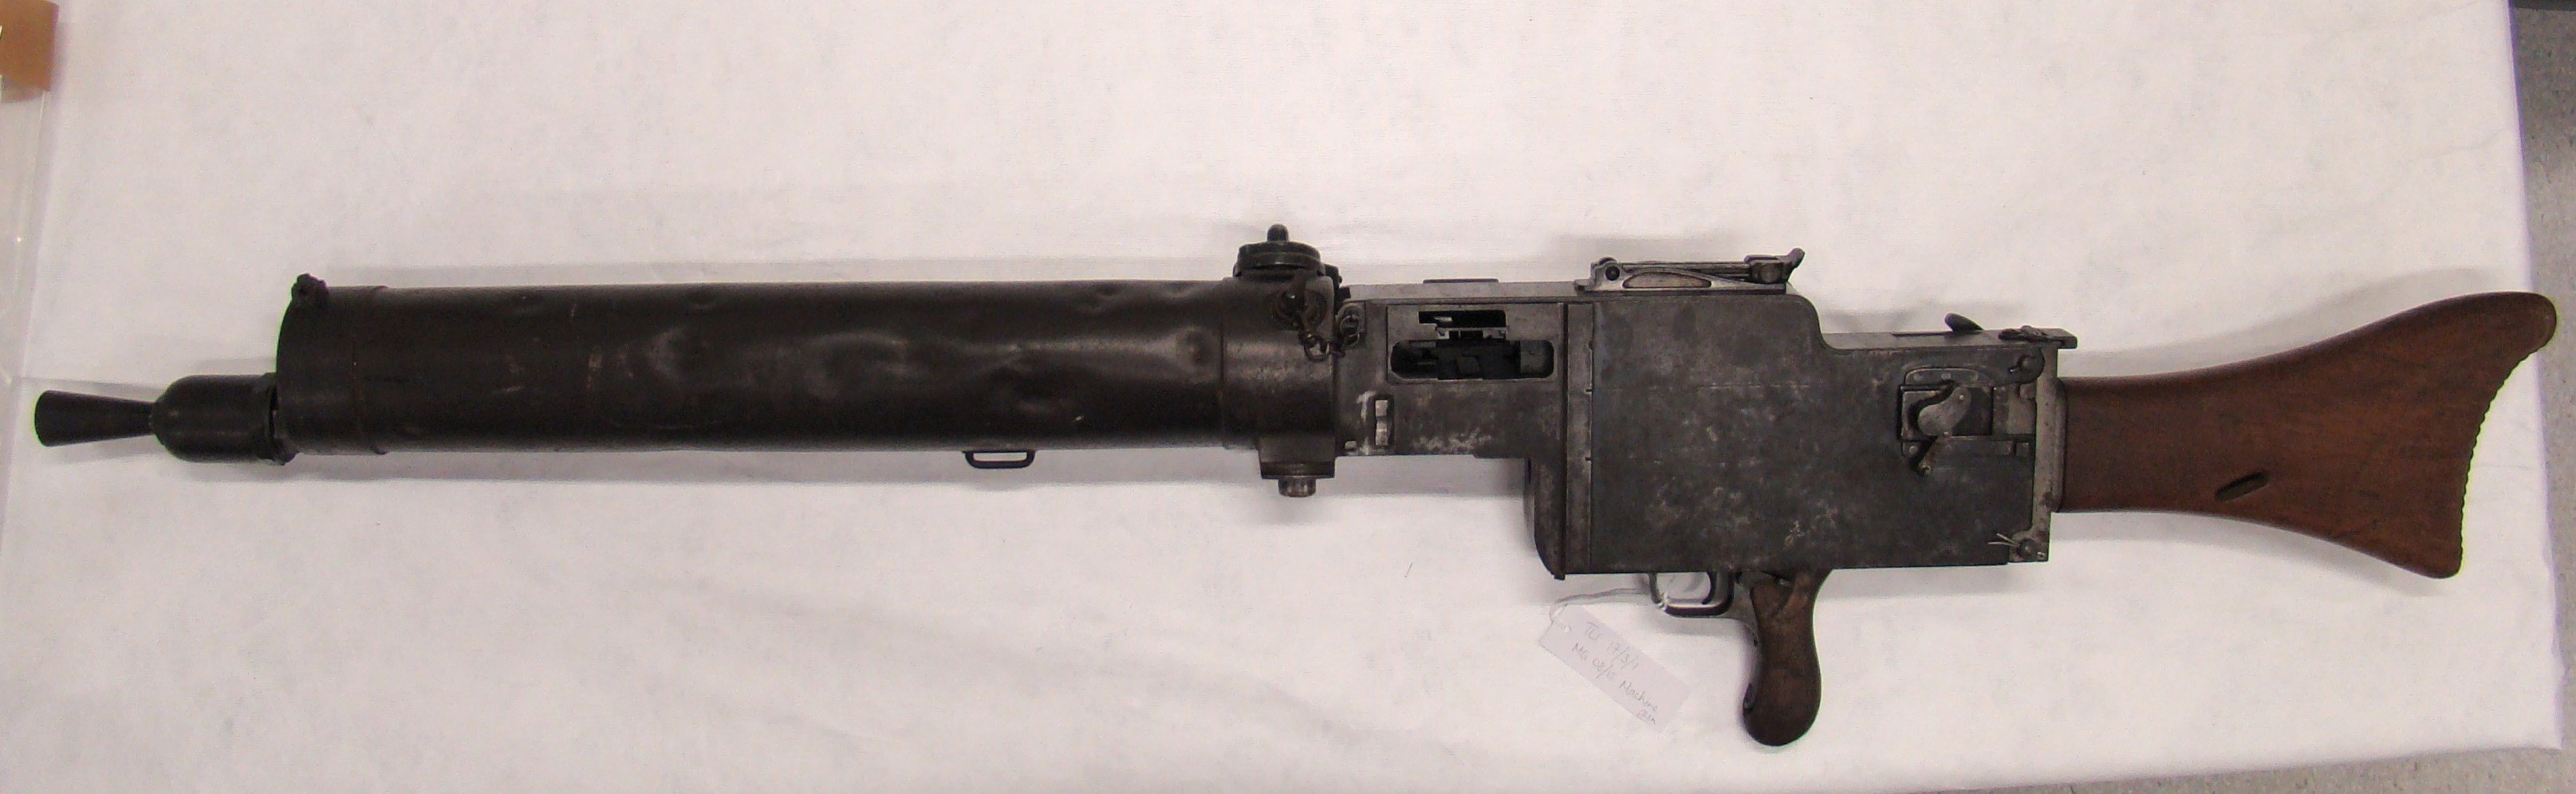 MG08/15 German machine-gun on loan to Toitu Otago Settlers Museum from a private collection....